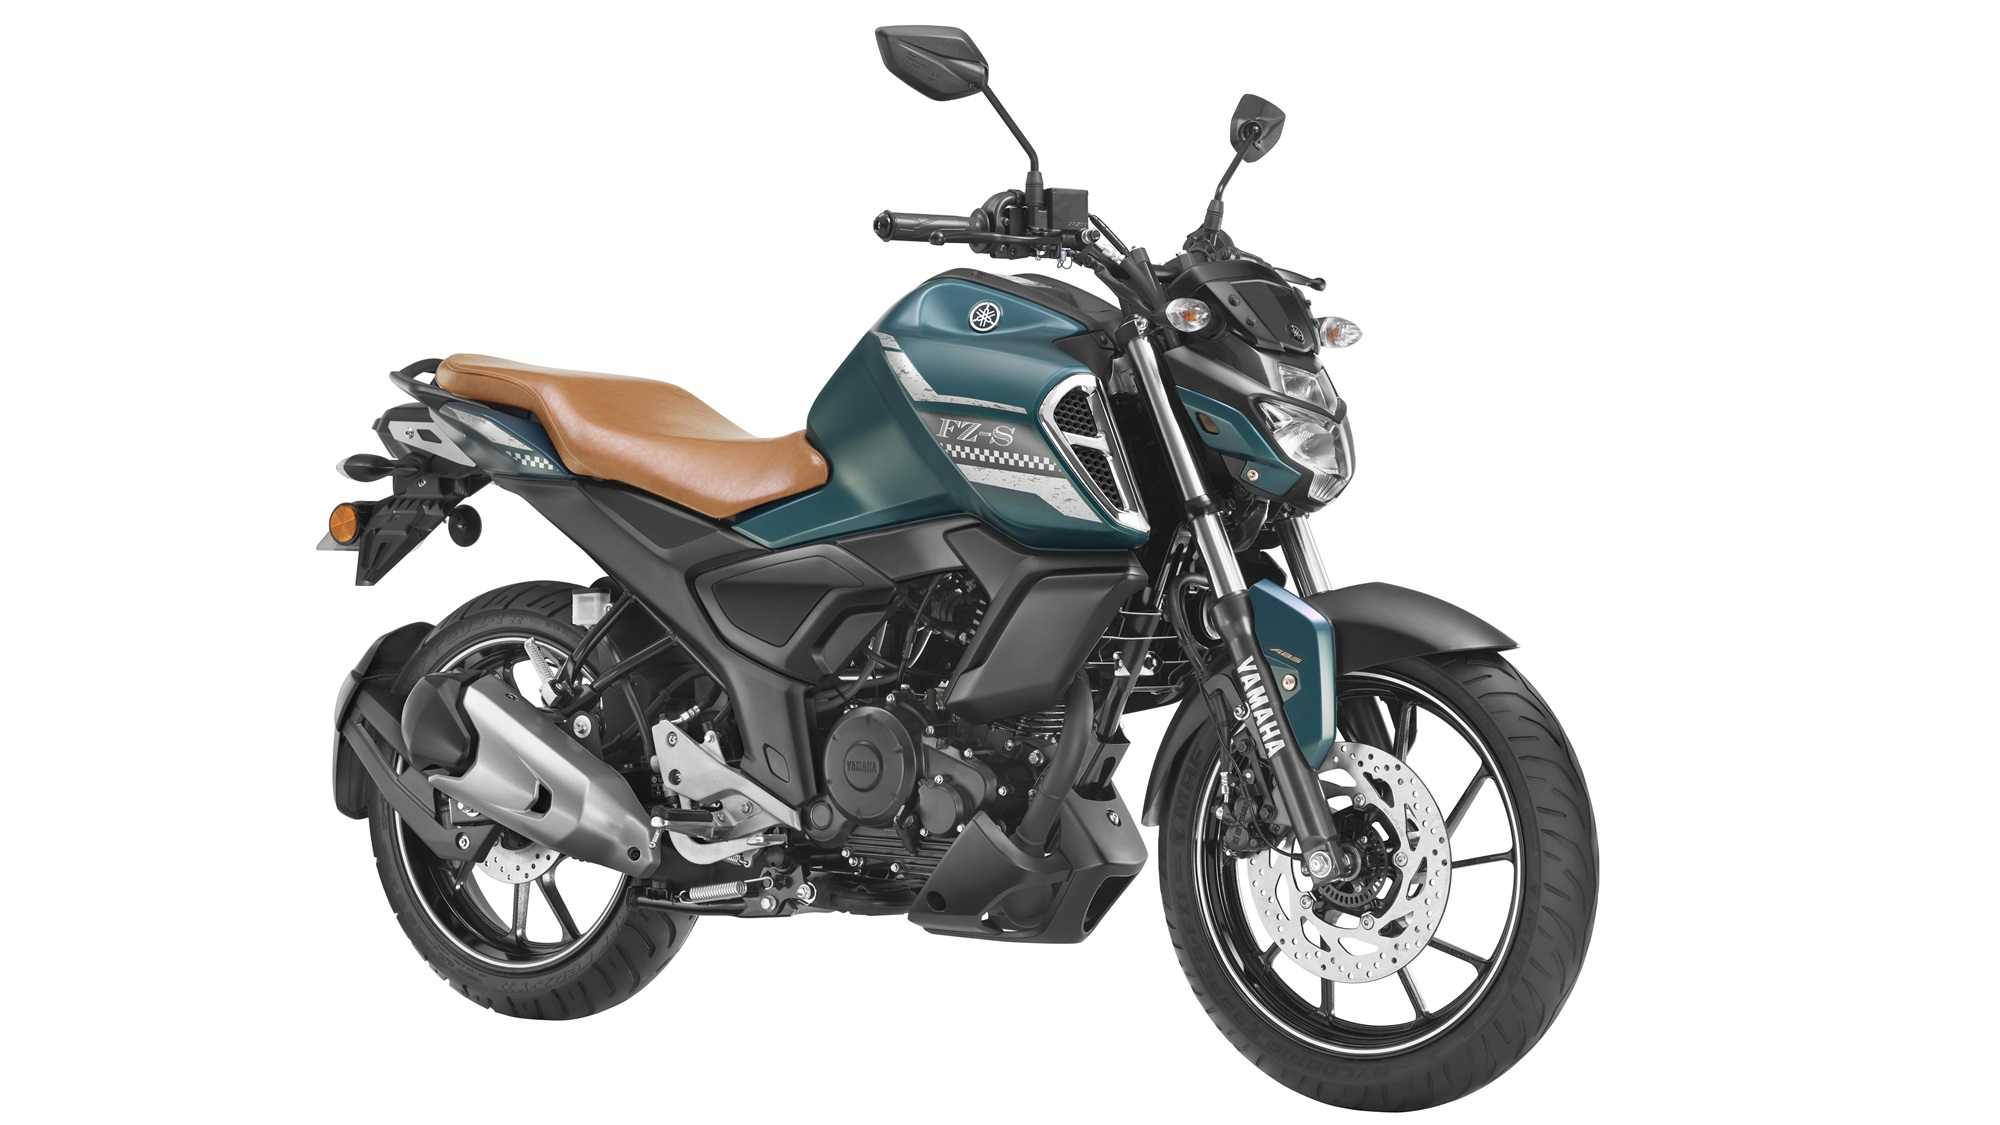 Vintage Edition of Yamaha FZS Fi launched with Bluetooth Connectivity